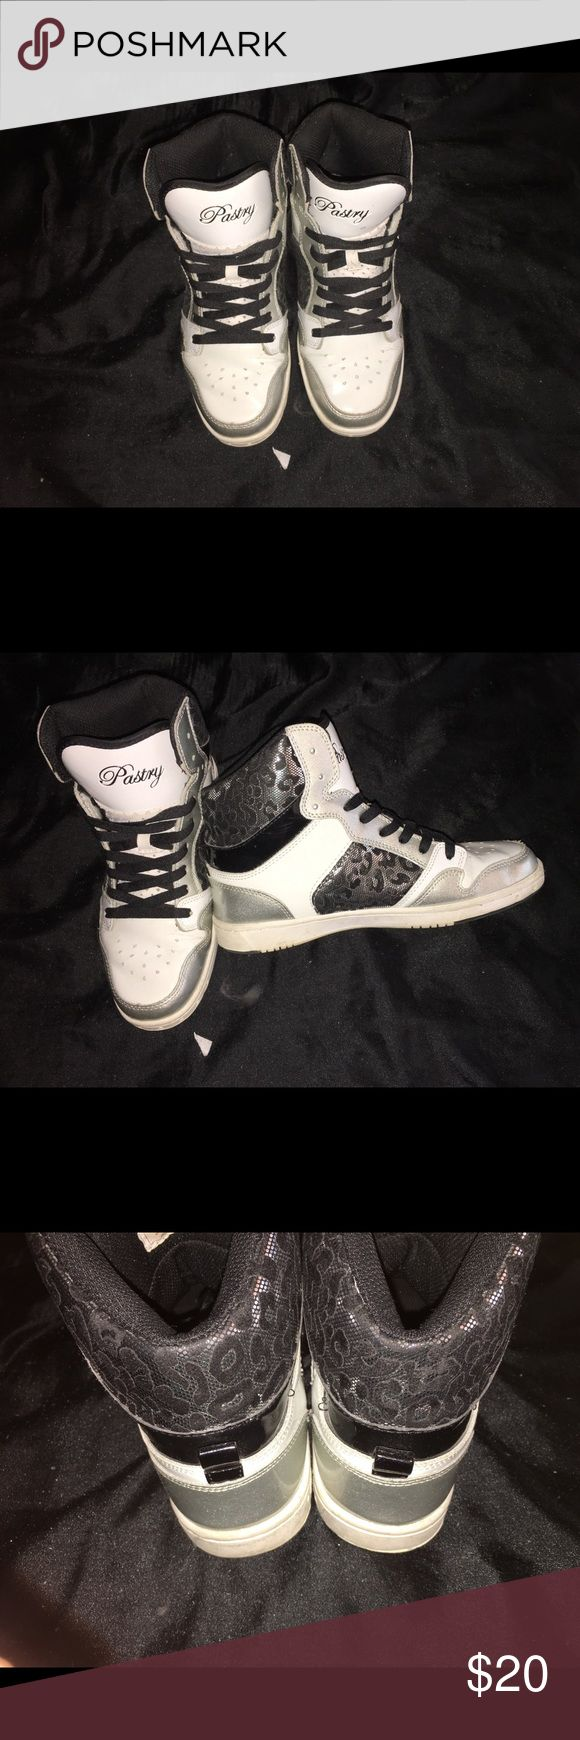 Pastry Shoes White & Silver Leopard Print pastry Shoes Sneakers